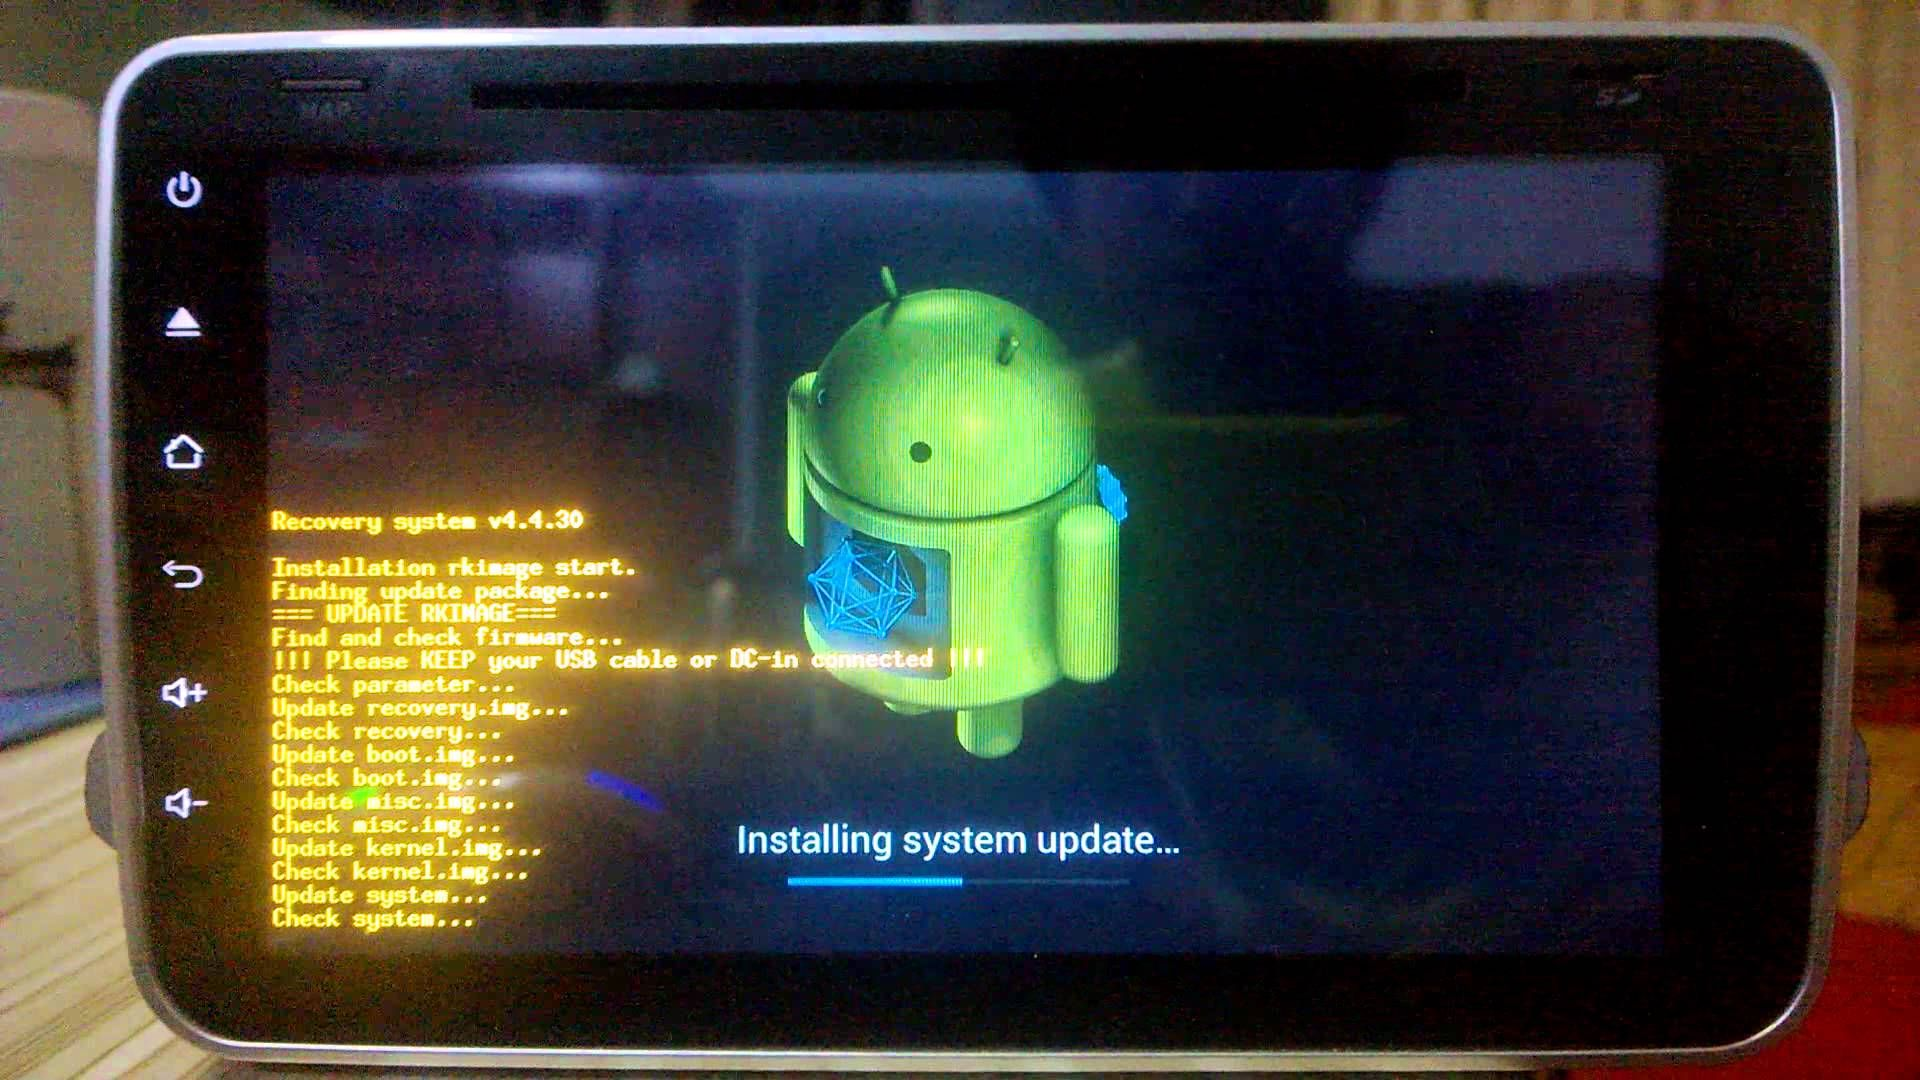 Update Quad Core RK3188 16GB Memory Android 4 4 4 version